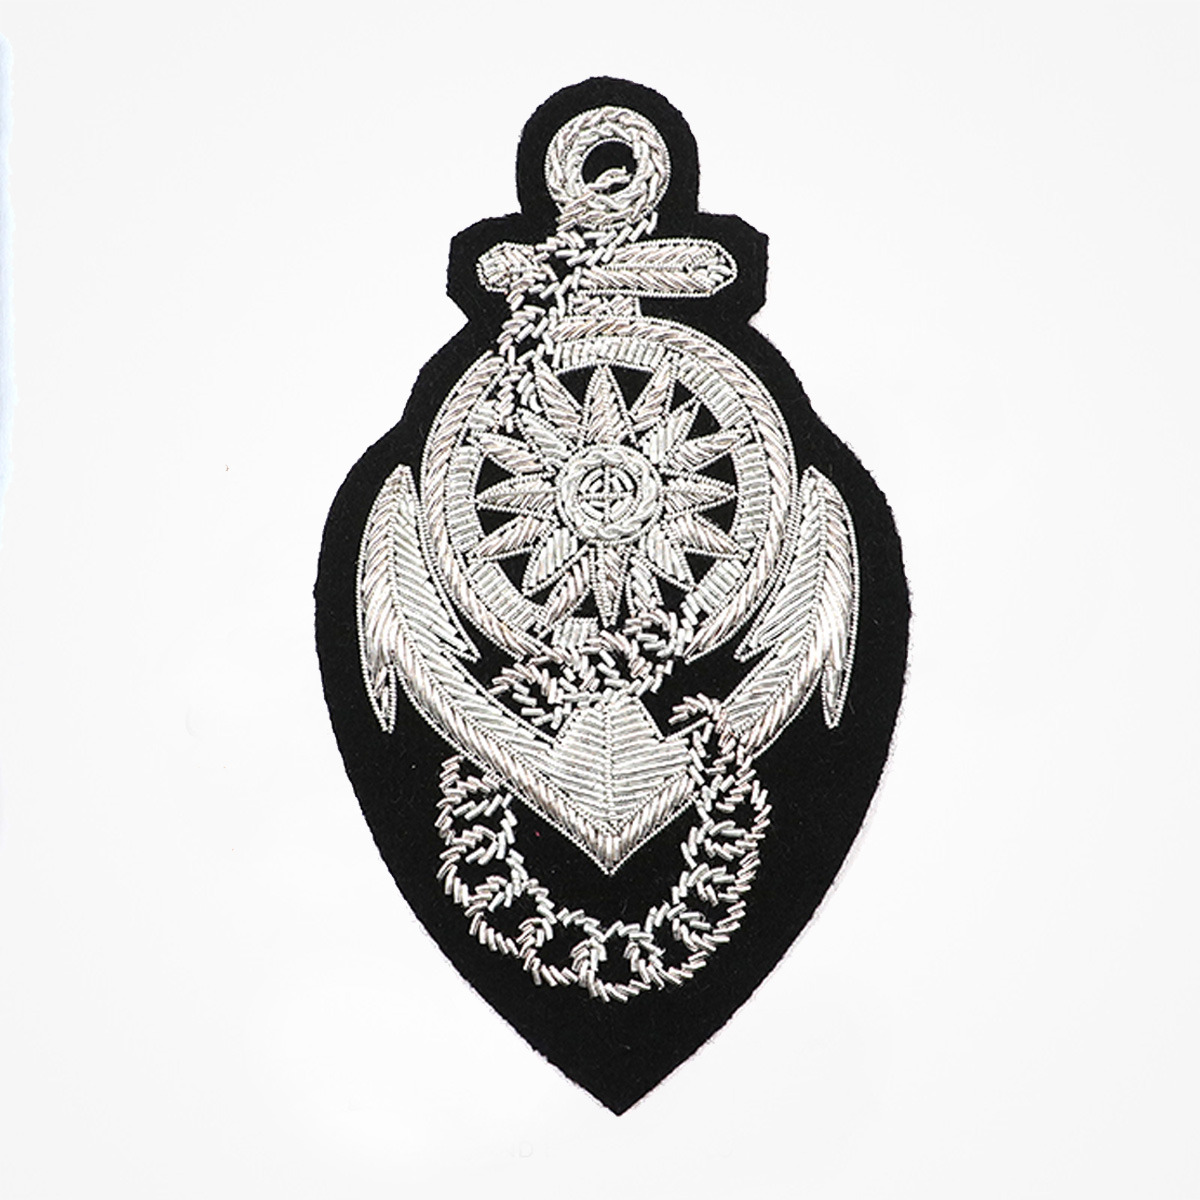 Qg - 3498 - Fashionable 3D embroidered look Made by skilled artisans Bullion wire and silk thread hand Stitched on Black color Felt Available in gold and silver colors Size = 130 mm height 75 mm width sew-on backing: Perfect for caps, sports jacket, leather jackets, blazer coat, Blazer Pocket, shirts uniforms, Accessories and many More Pin backing: easy to removable 5